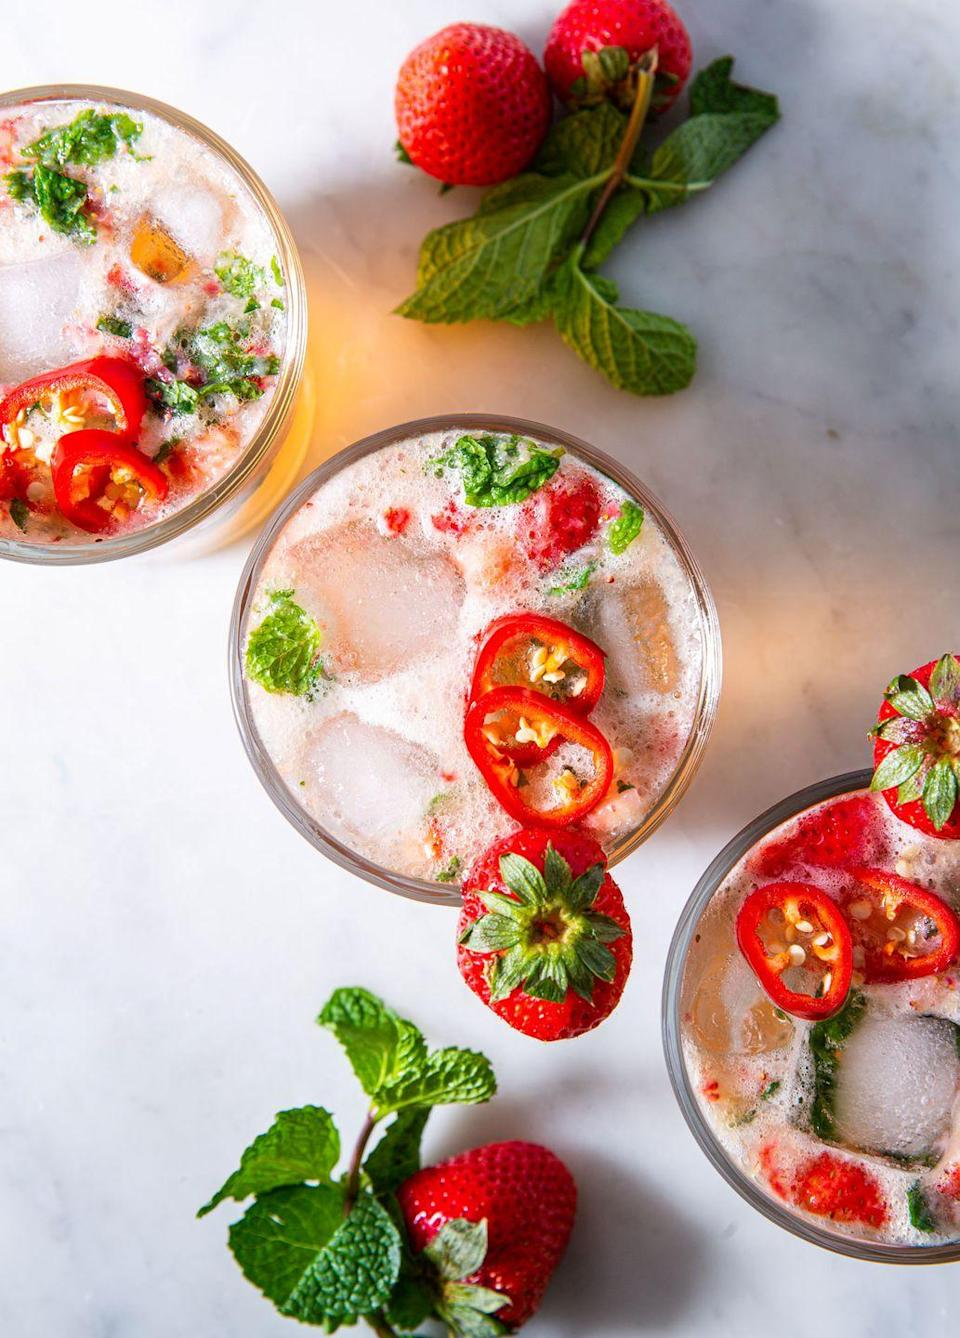 """<p>These have a real punch of heat.</p><p>Get the recipe from <a href=""""https://www.delish.com/cooking/recipe-ideas/a32783504/strawberry-mint-julep-recipe/"""" rel=""""nofollow noopener"""" target=""""_blank"""" data-ylk=""""slk:Delish"""" class=""""link rapid-noclick-resp"""">Delish</a>. </p>"""